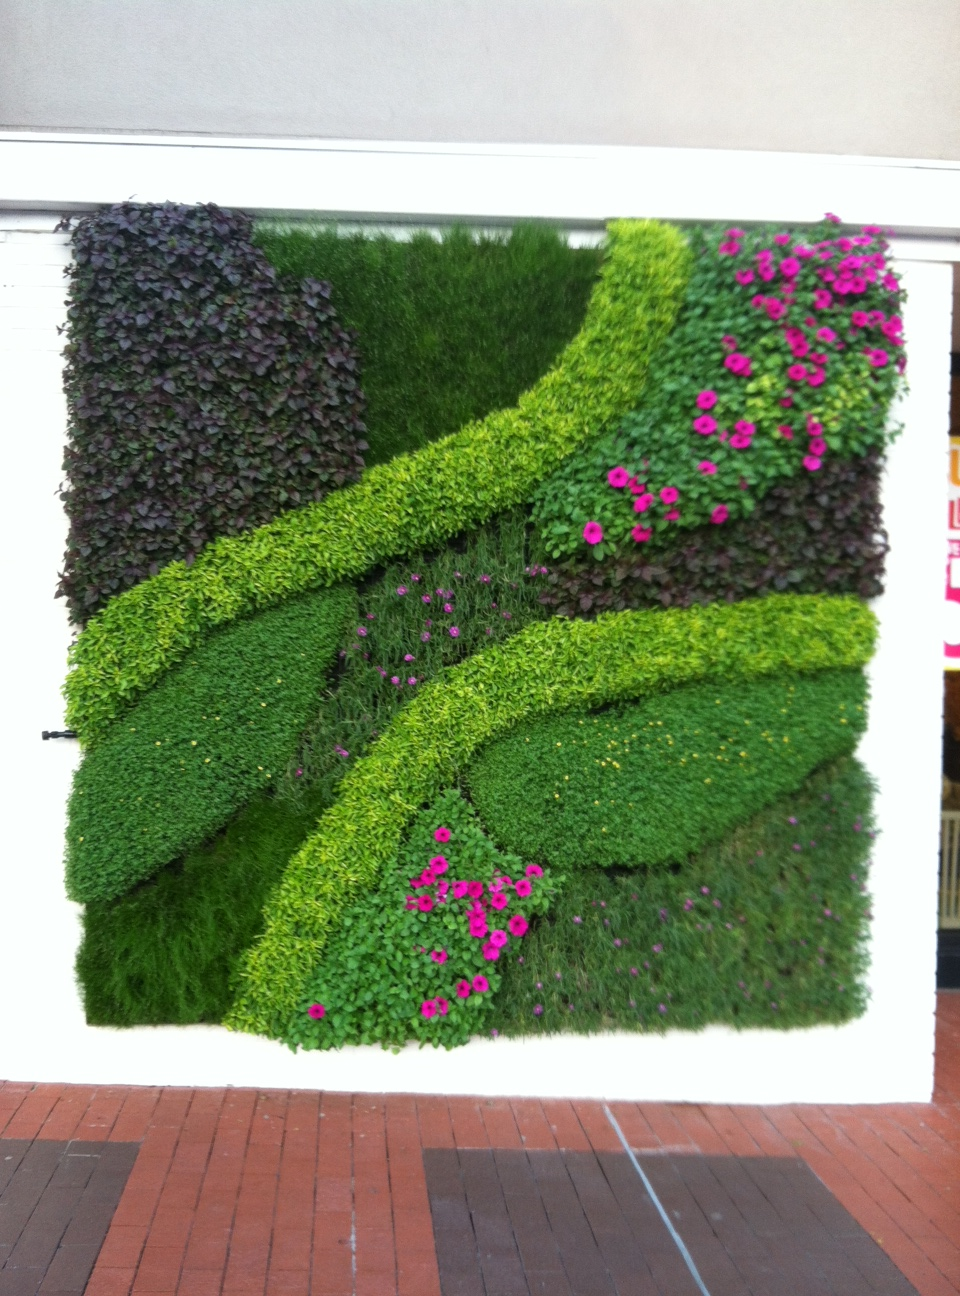 Living Wall Art You Should Grow That